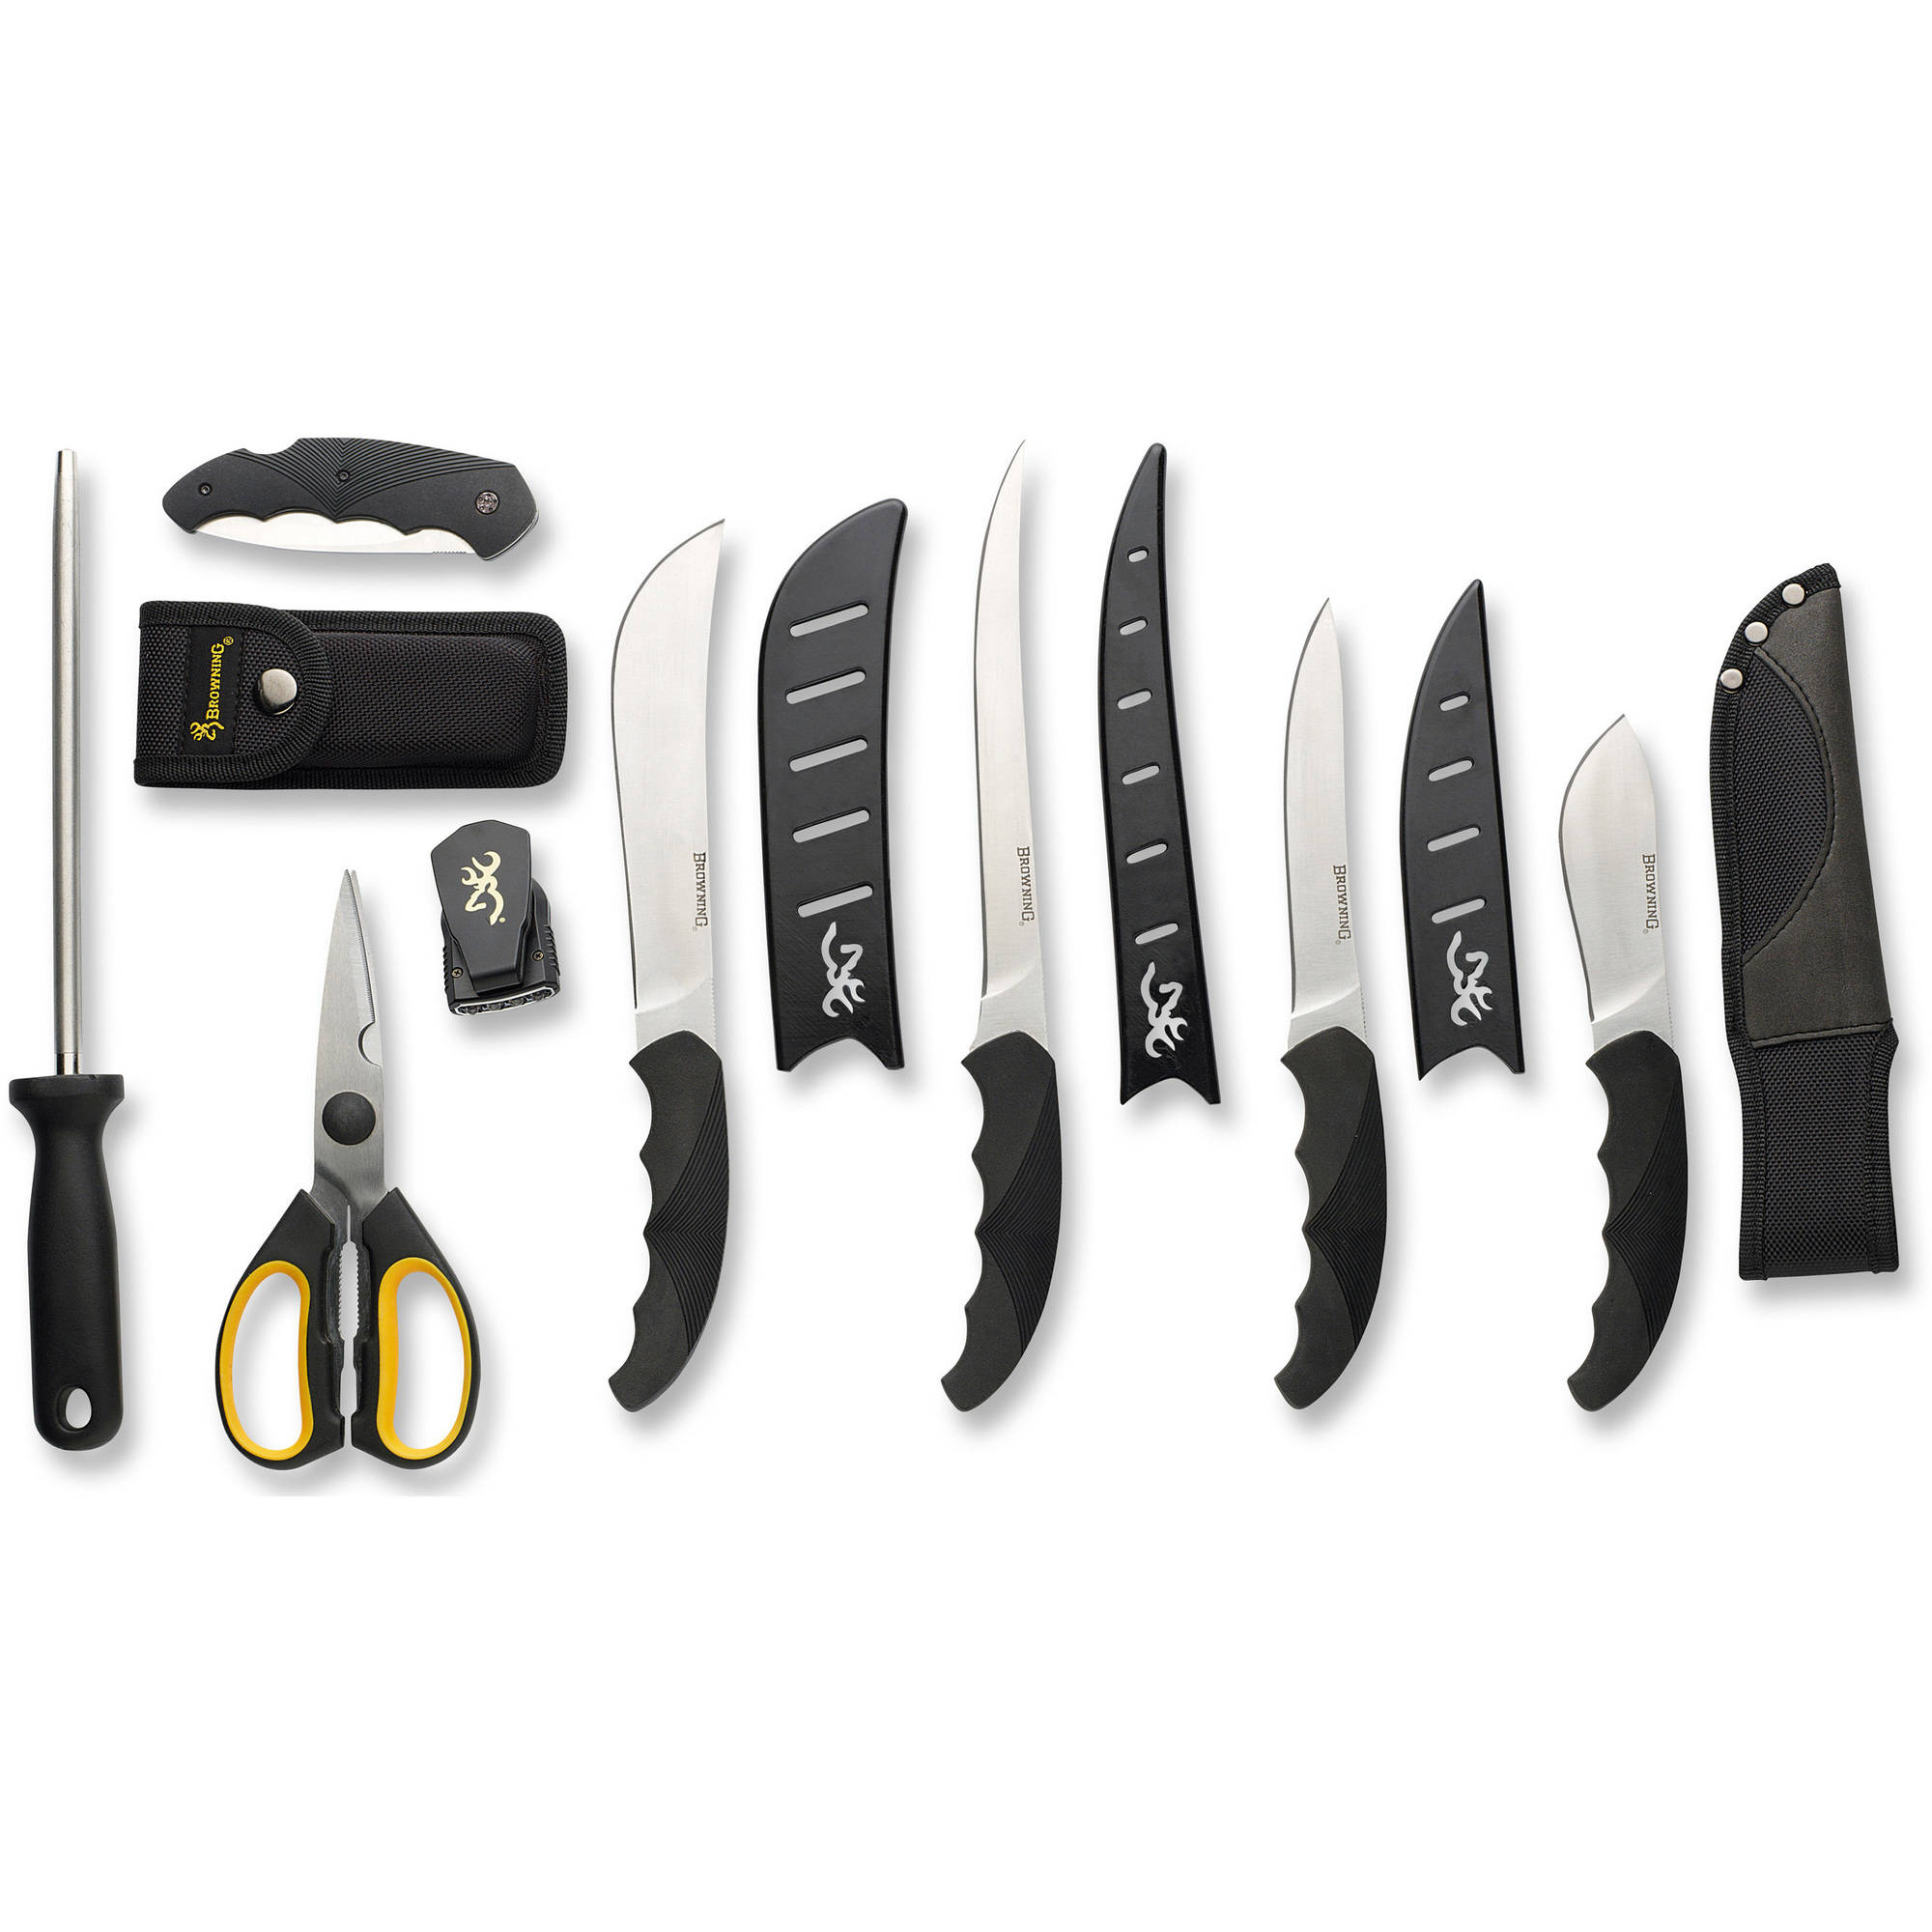 Special Offer Browning DIY Butcher Kit Clam Before Special Offer Ends